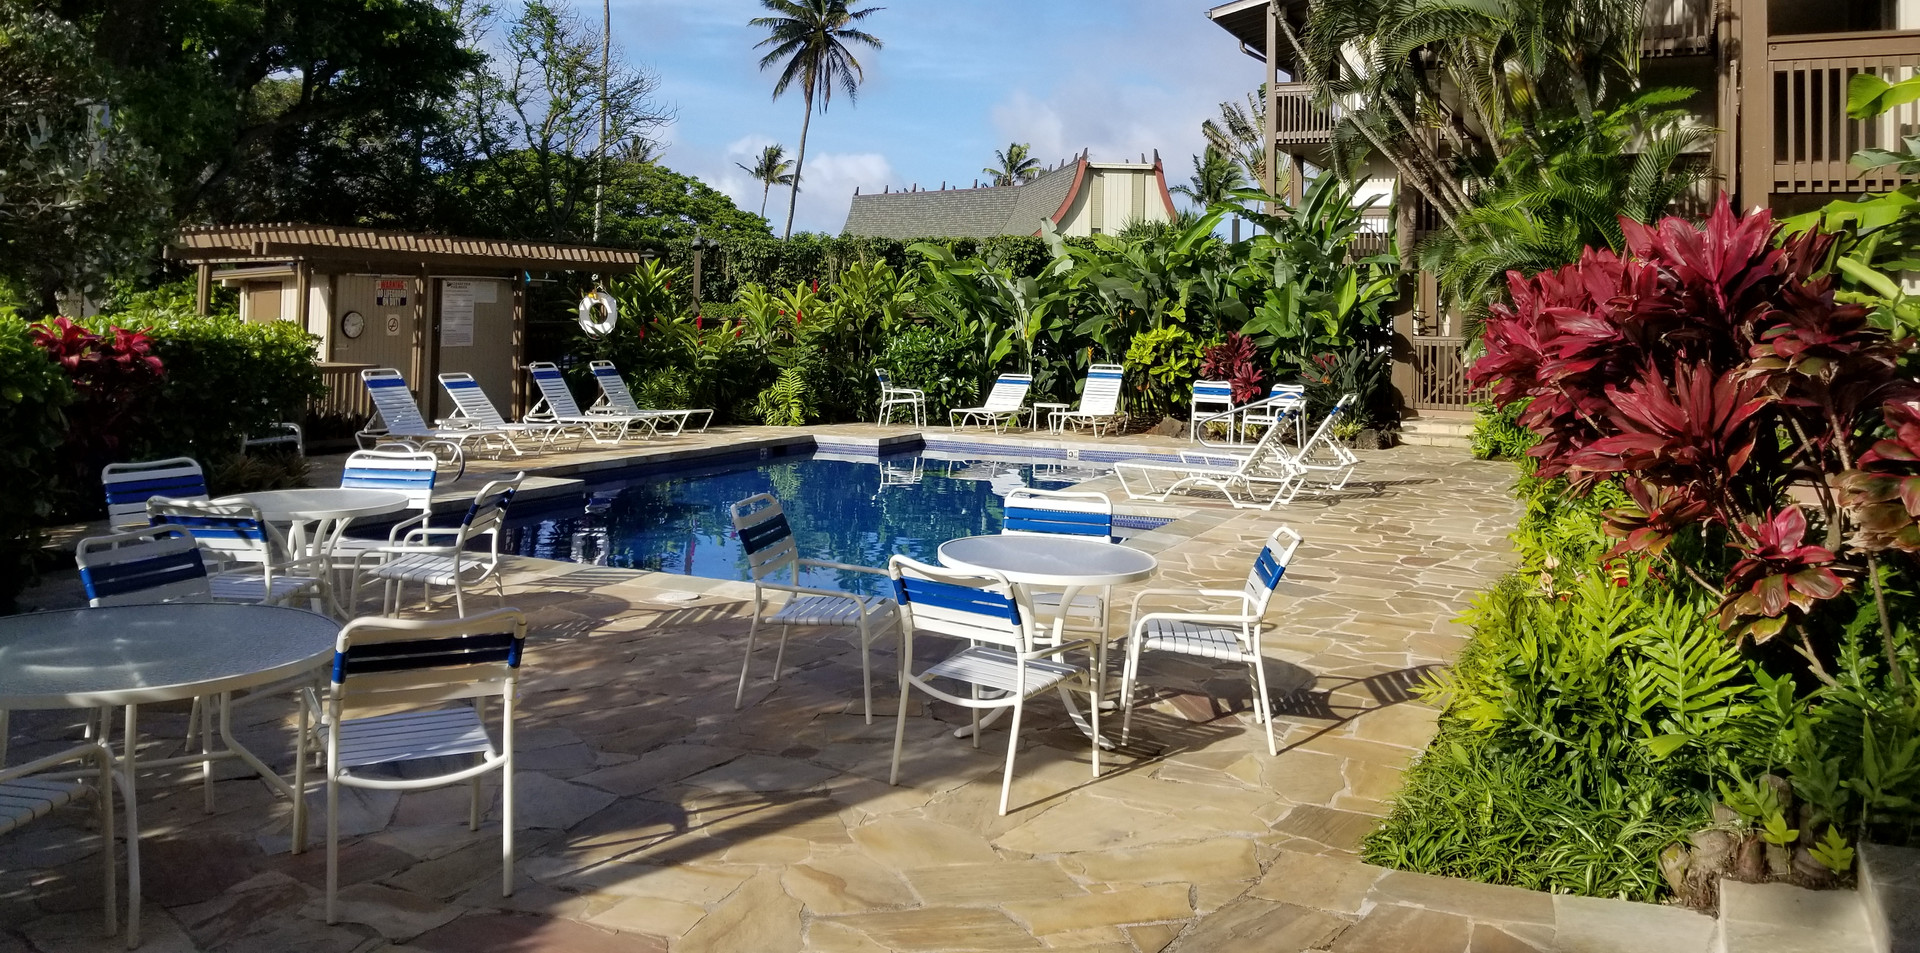 Recently Remodeled Pool Area